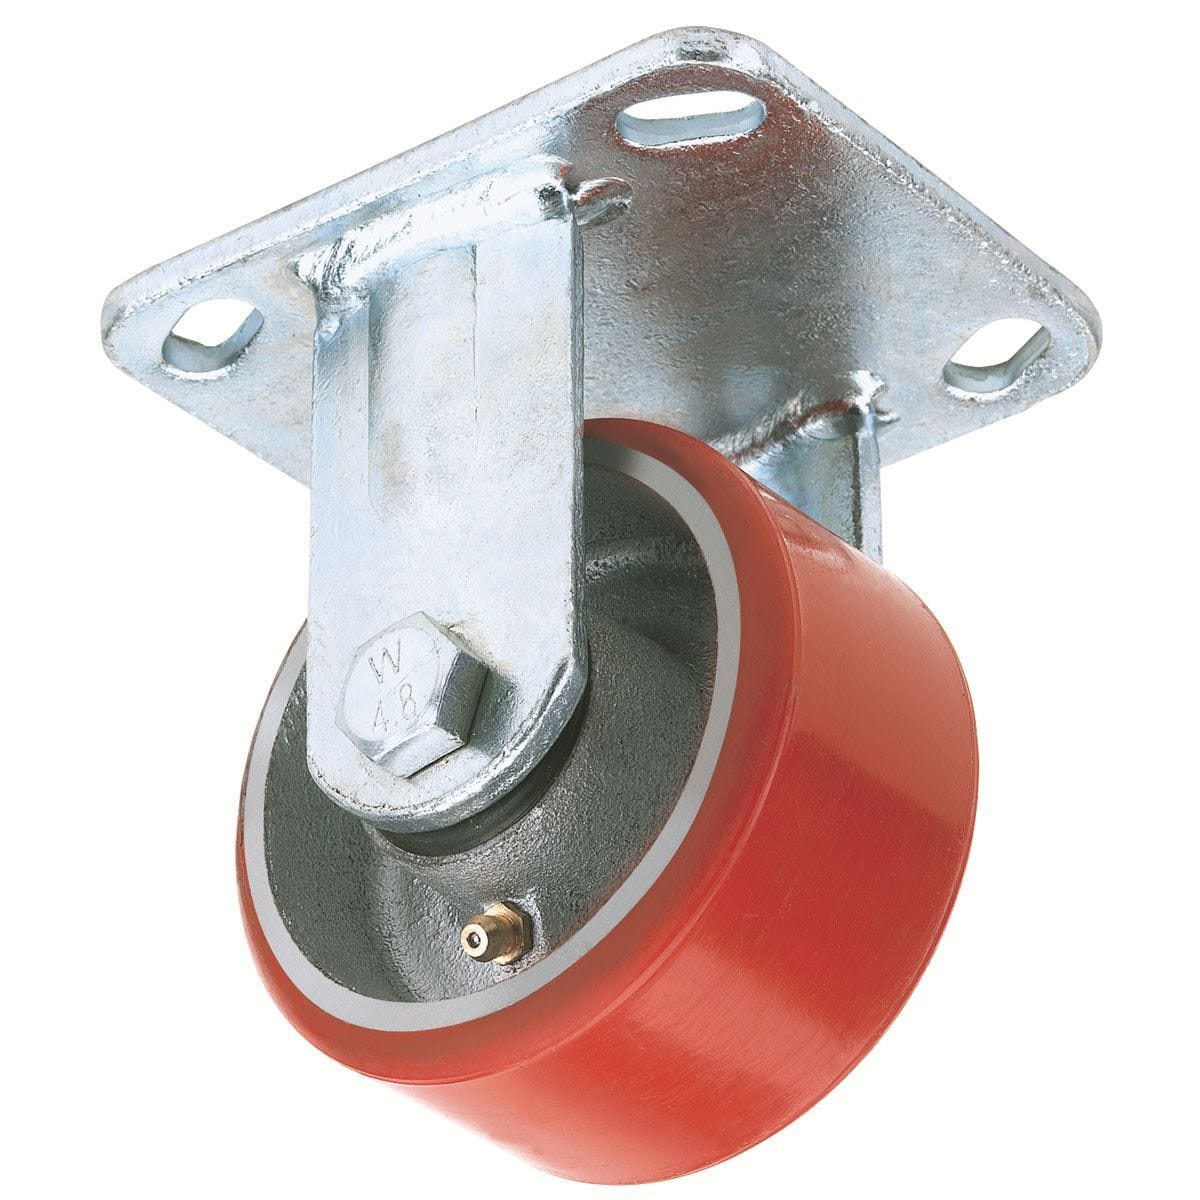 Draper 160mm Diameter Fixed Plate Fi x ing Heavy Duty Polyurethane Wheel - S.W.L. 400Kg